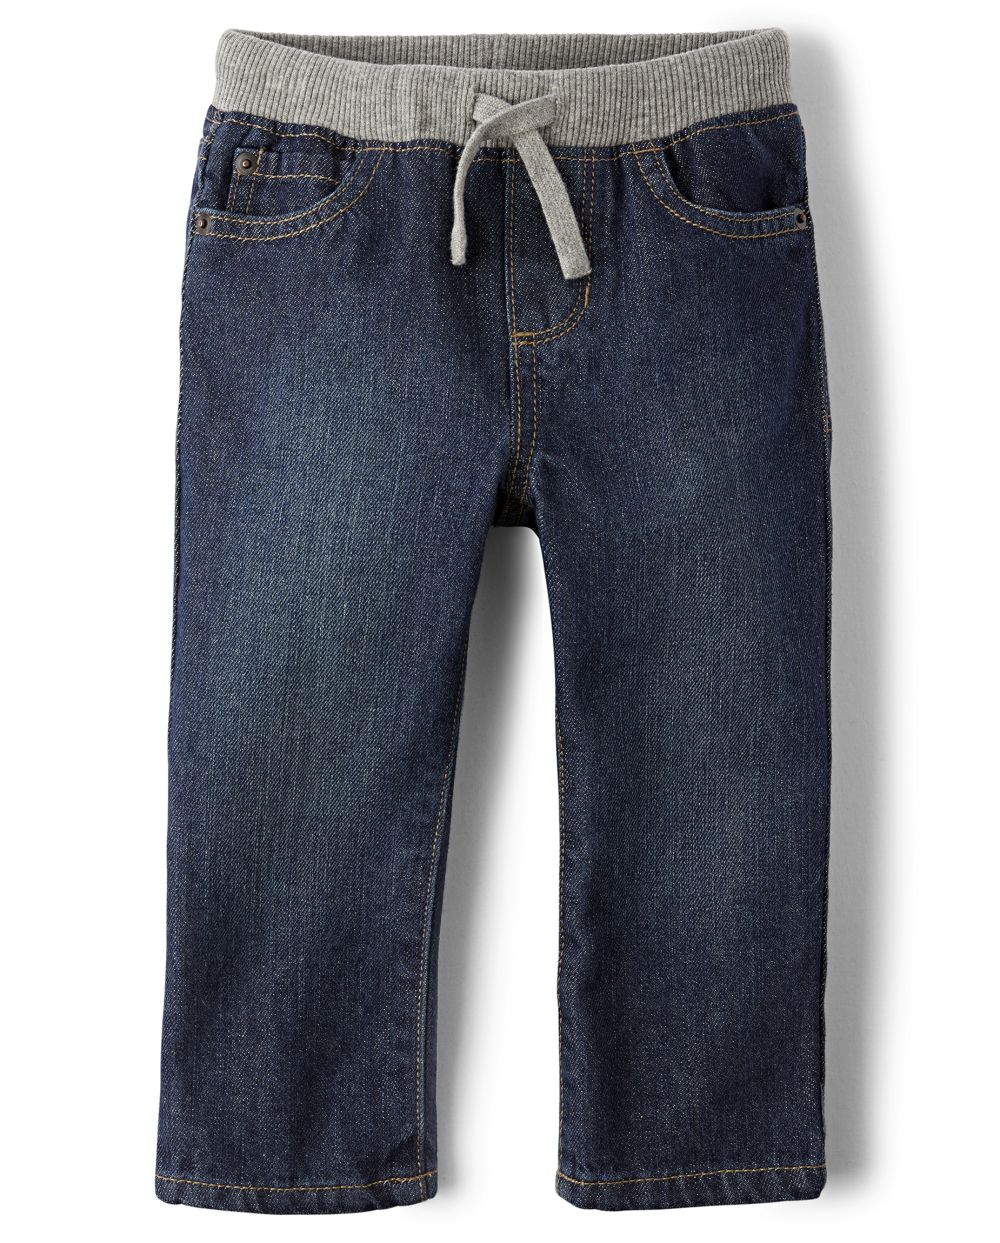 Compare Baby And Toddler Boys Pull On Straight Jeans